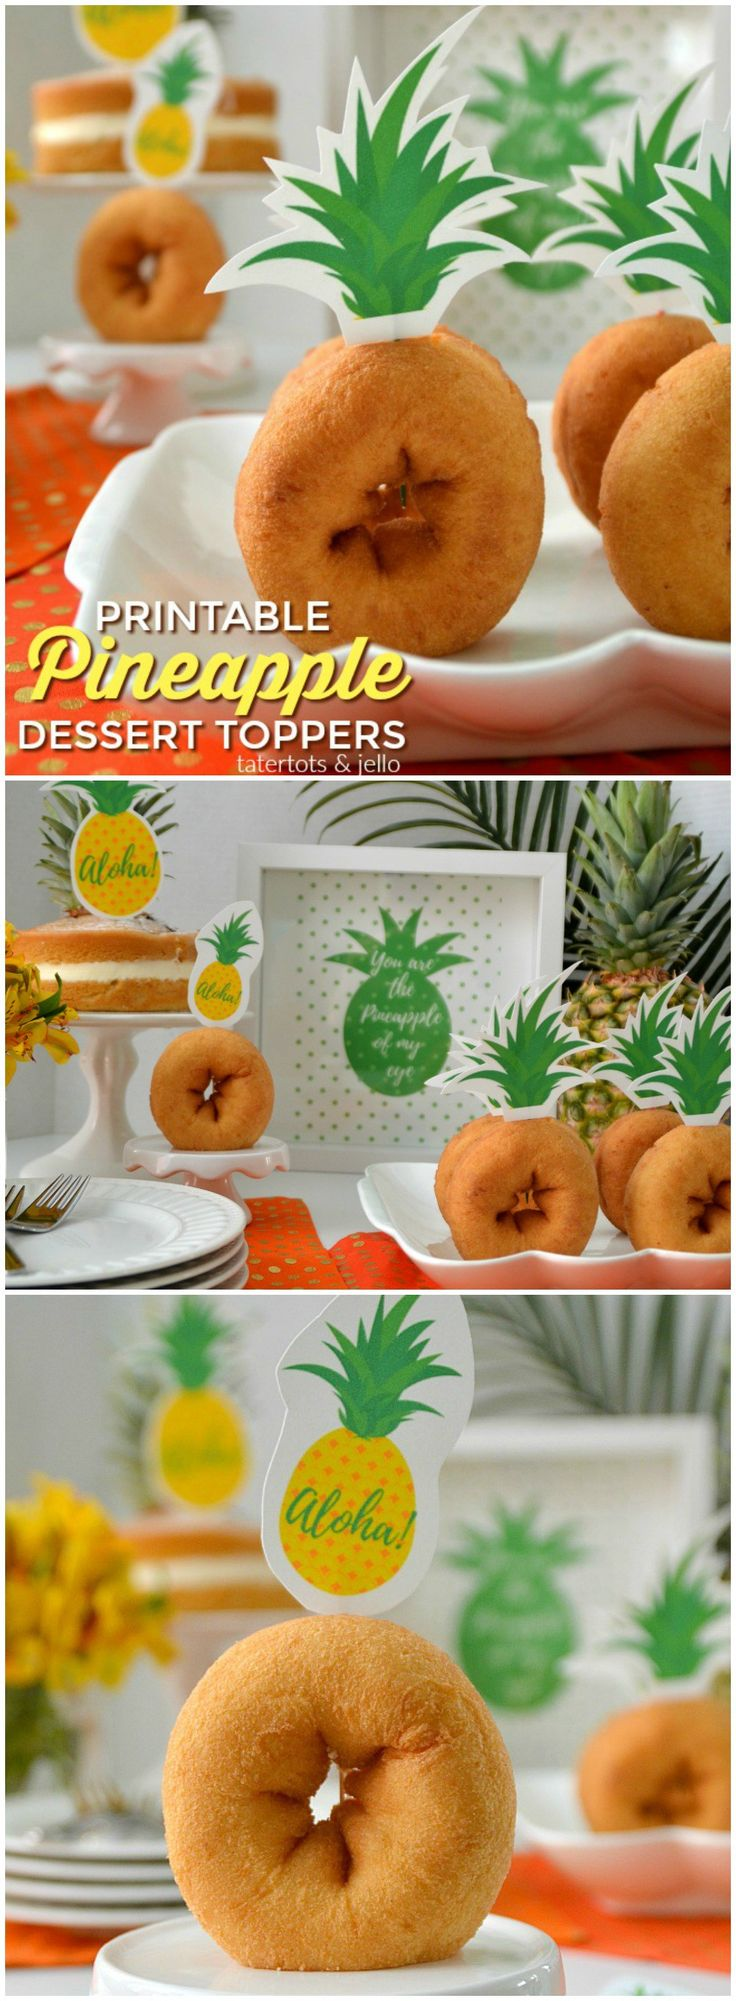 office summer party ideas. Pineapple Printable Cupcake Toppers Office Summer Party Ideas